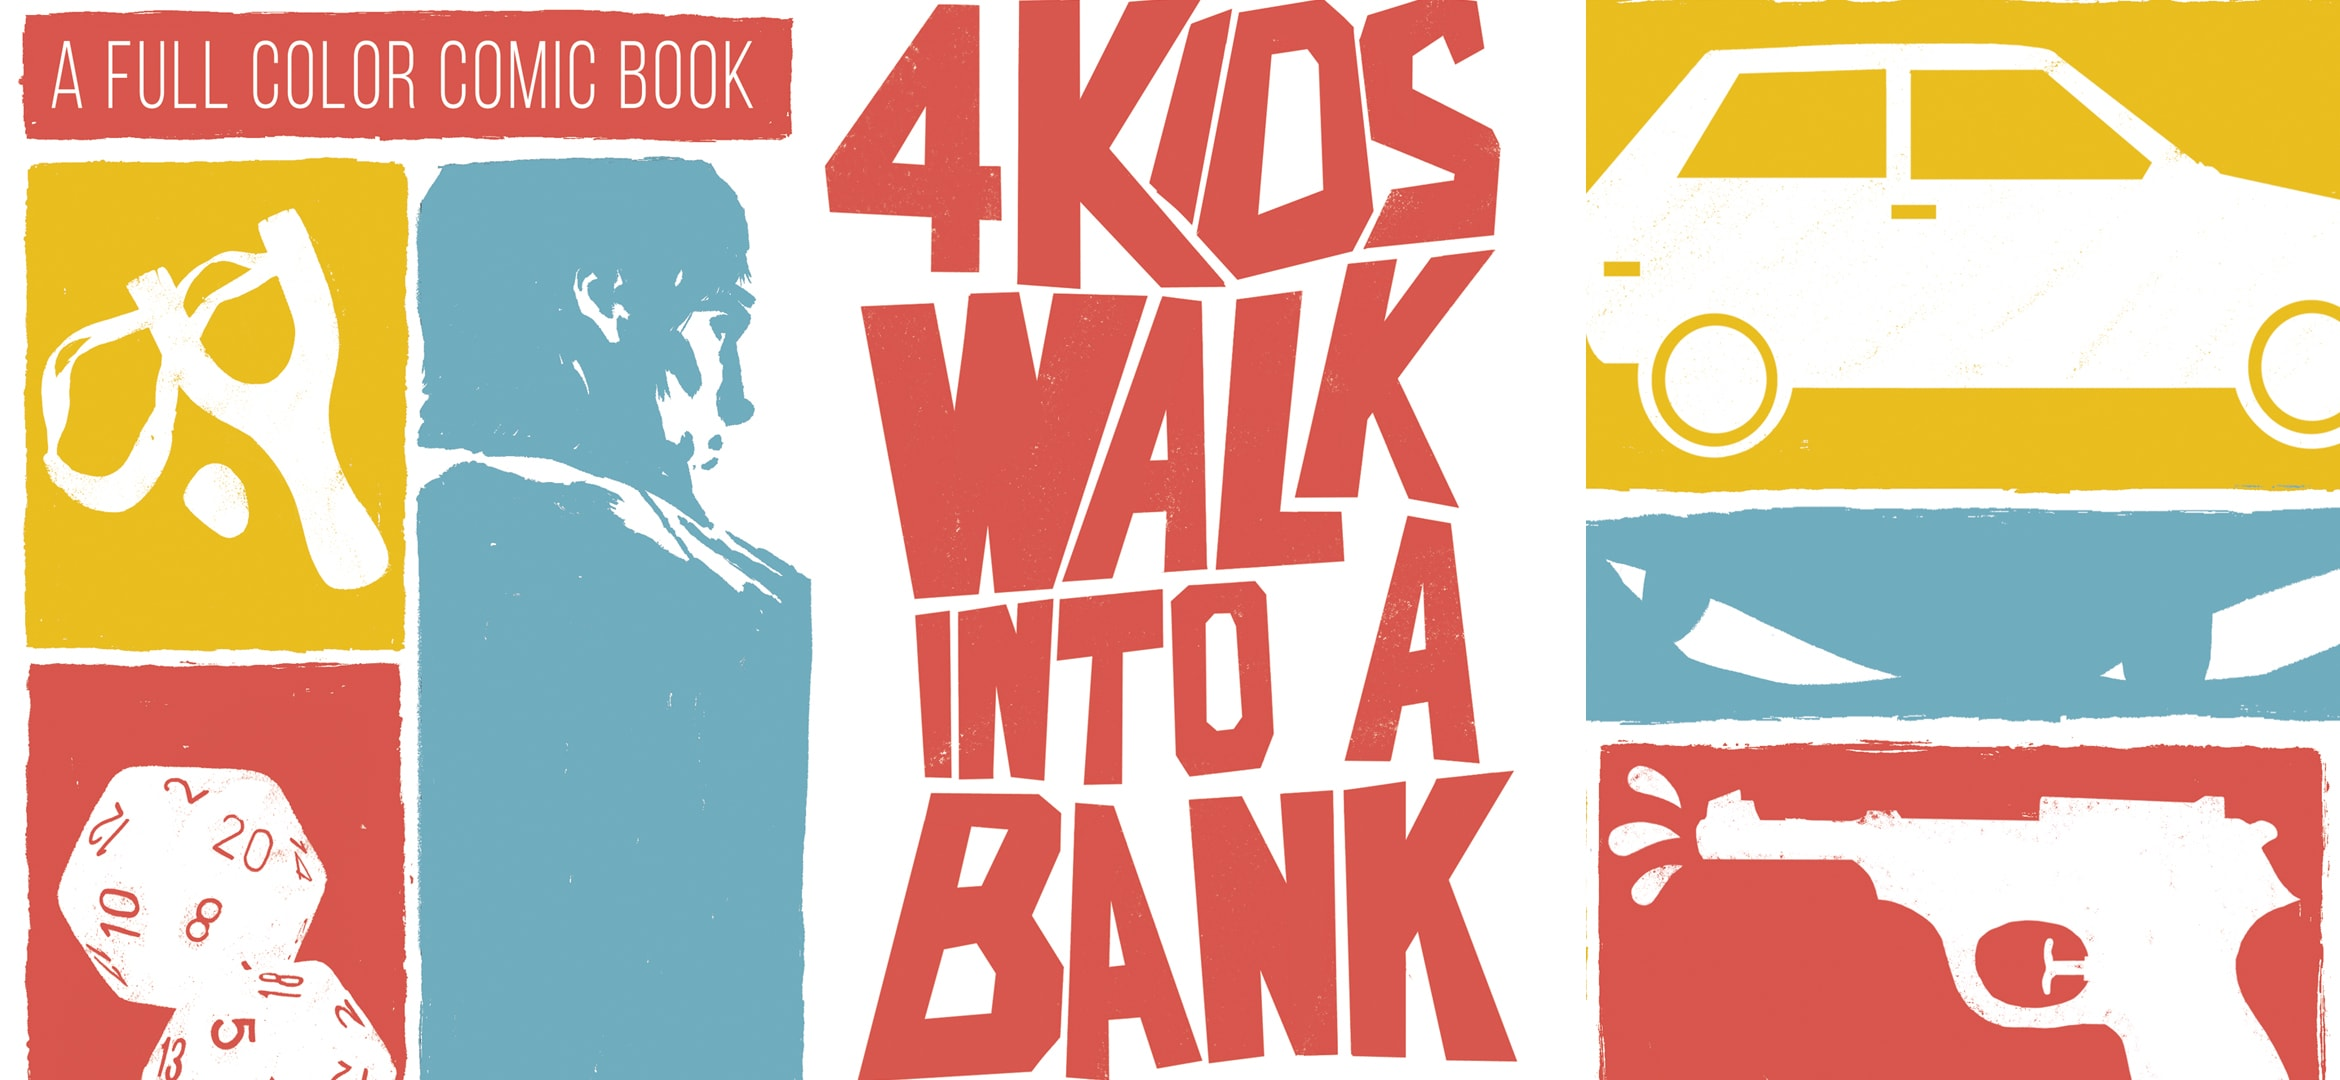 4 Kids Walk Into A Bank Review: A nice soiree involving a family situation